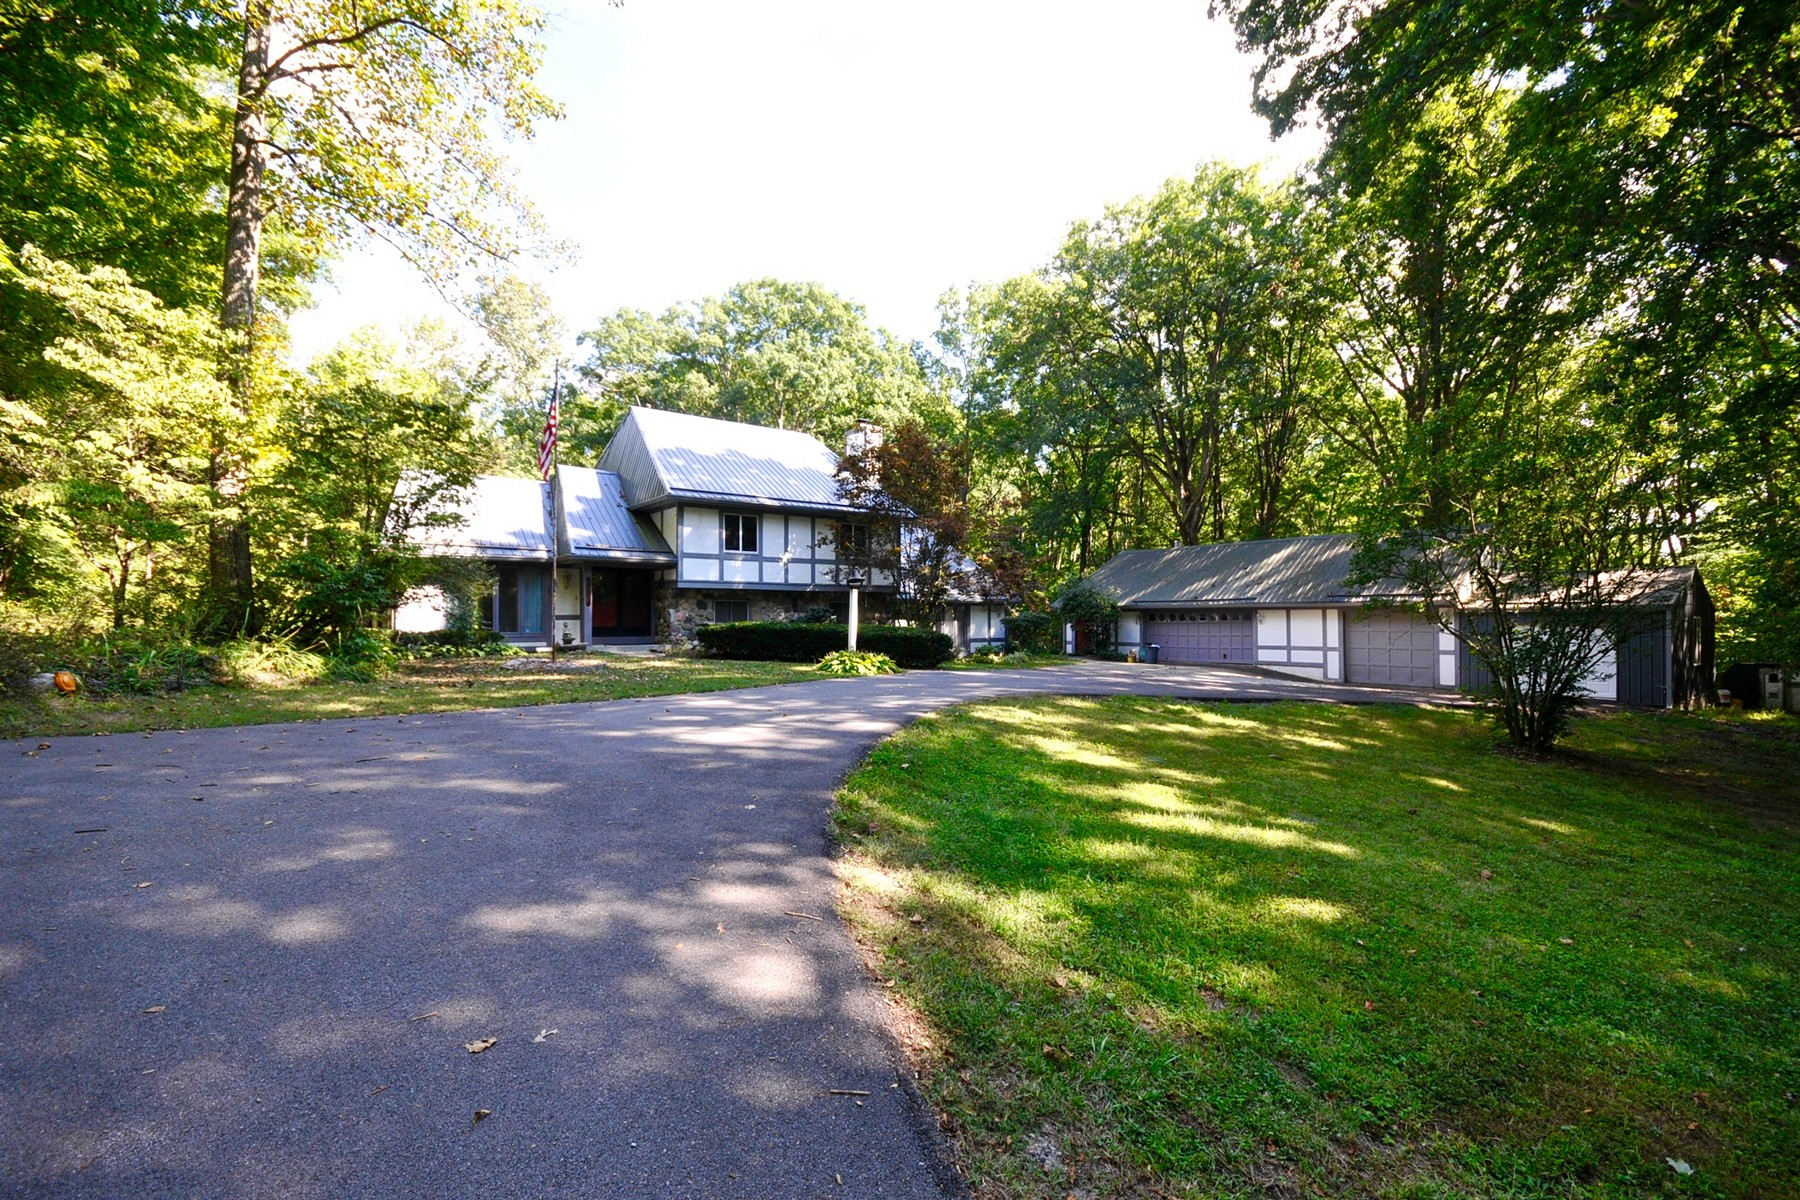 Single Family Home for Sale at Charming Home Rests on 14 Acres 3535 Conservation Club Road Morgantown, Indiana 46160 United States